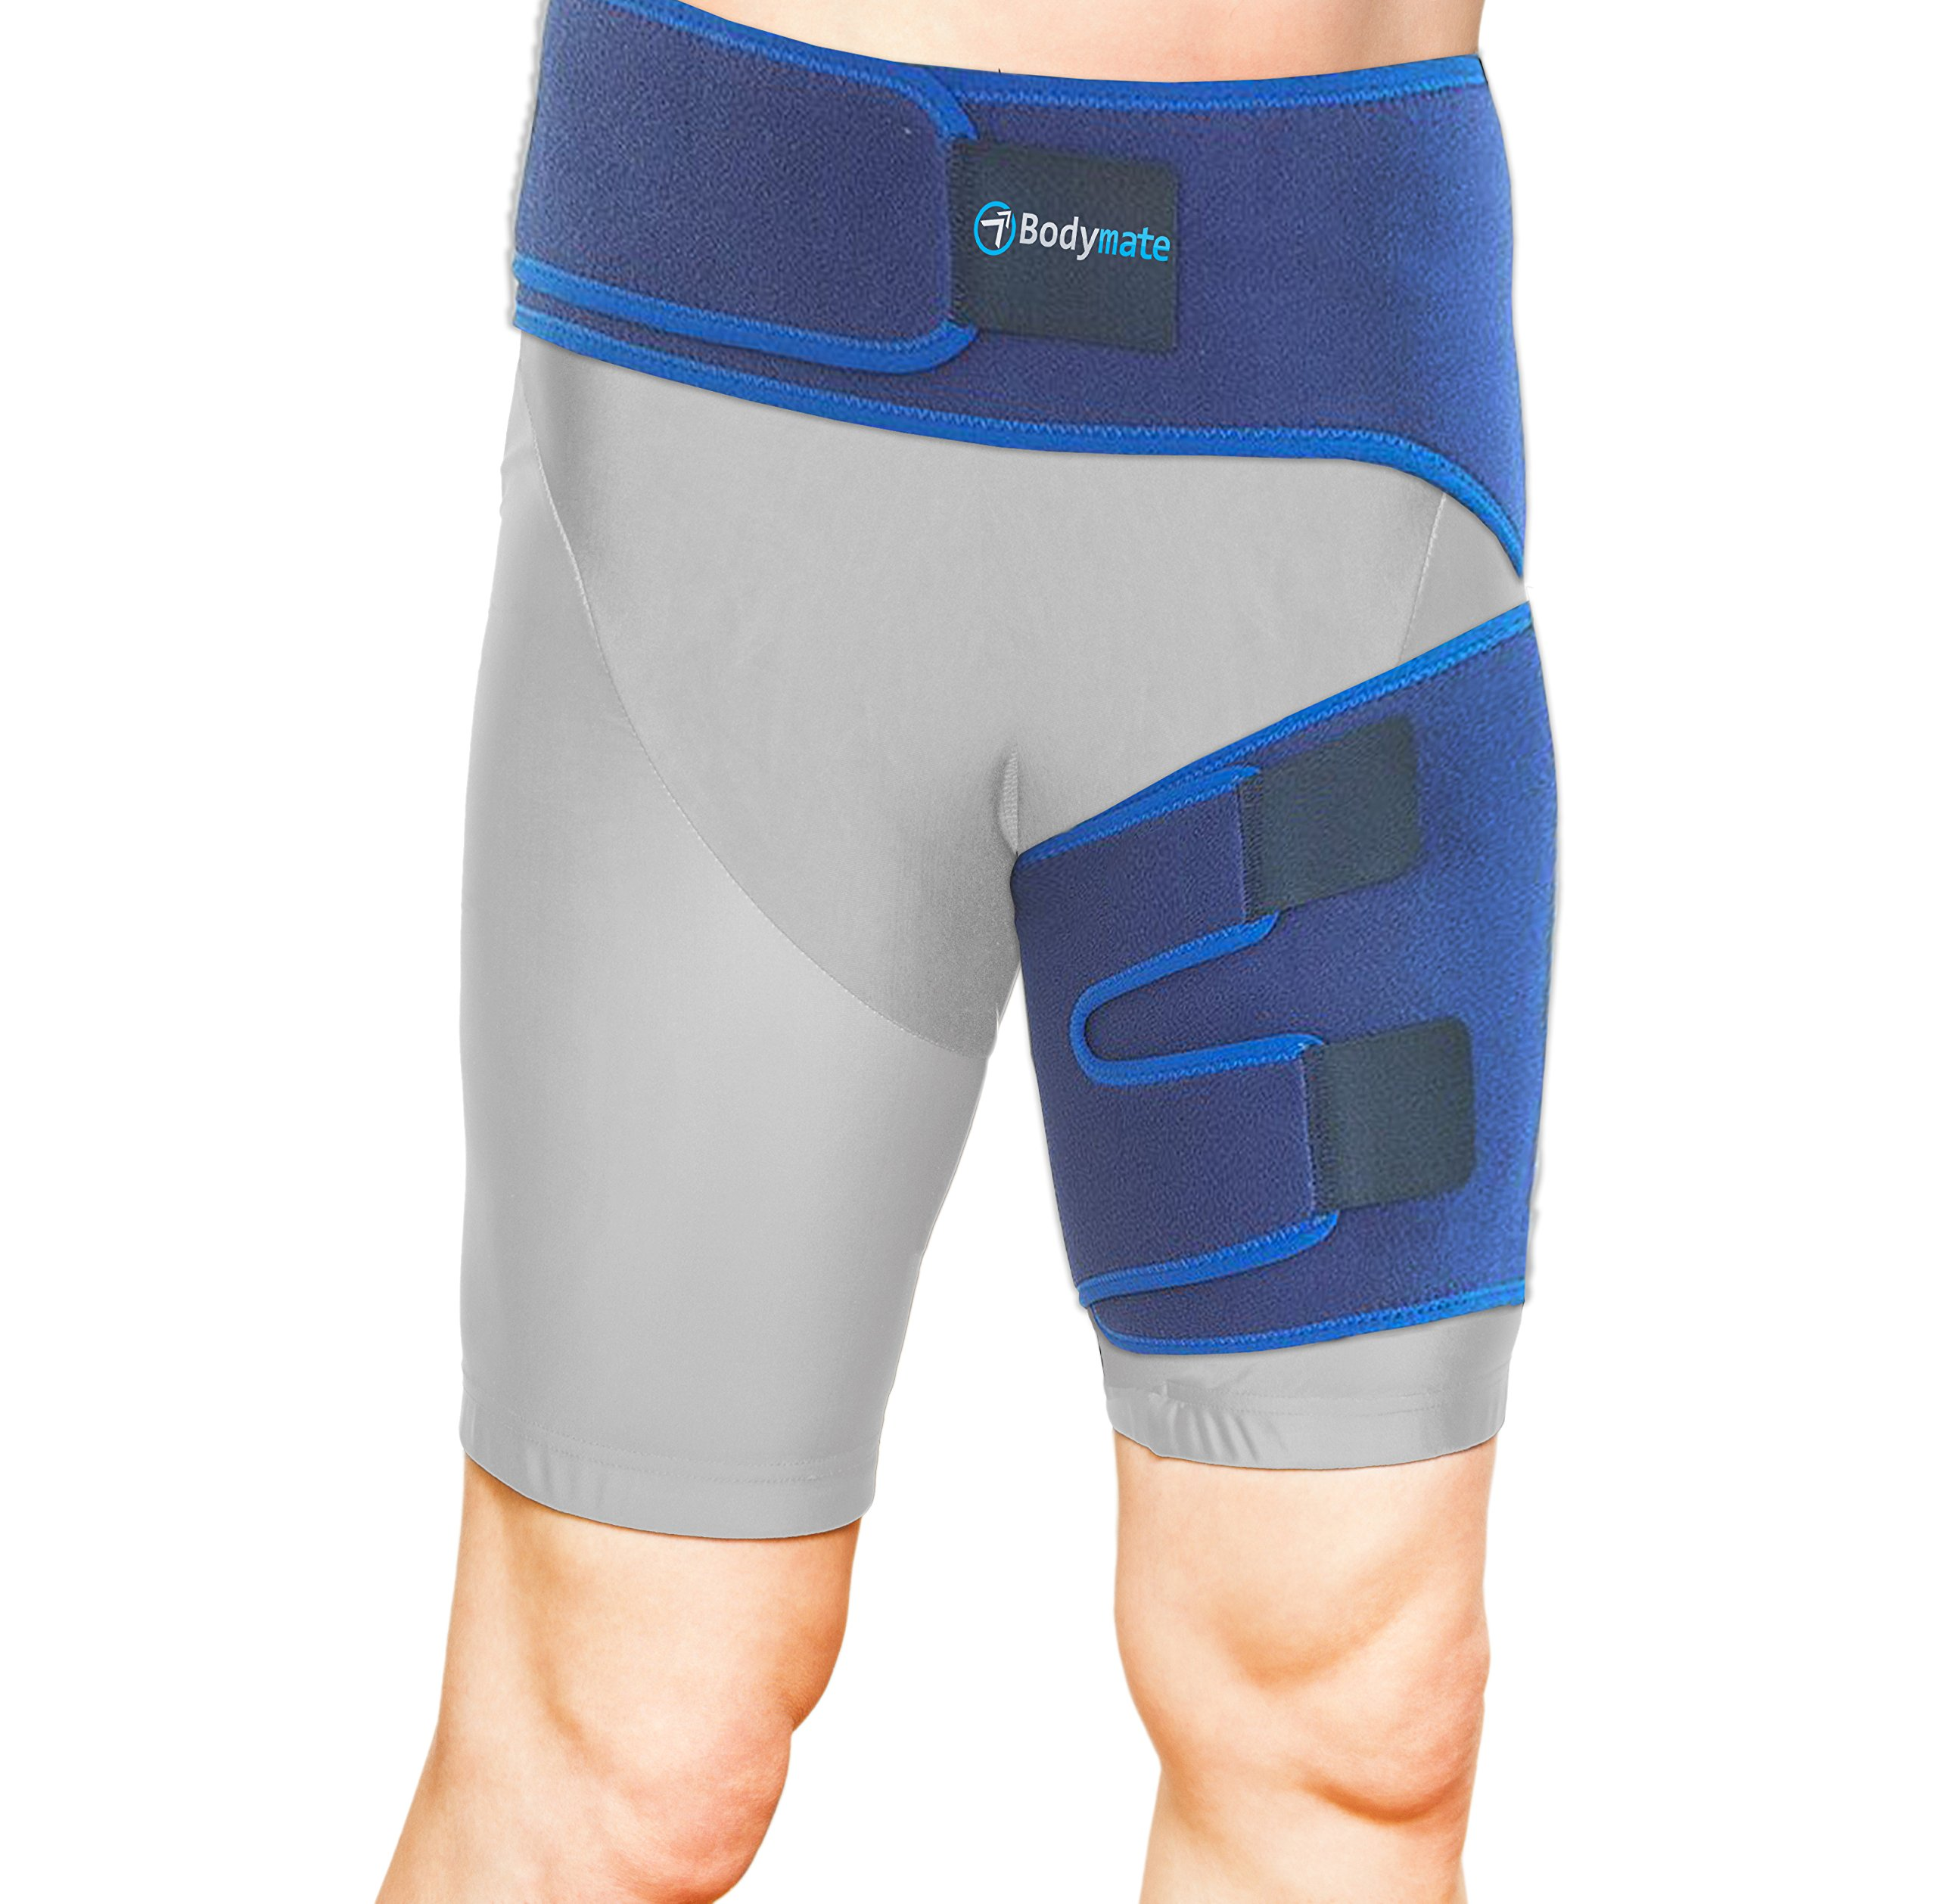 79609abe75 Bodymate Compression Wrap for Groin Hip Thigh Quad Hamstring Joints  Sciatica Nerve Pain Relief Strap,